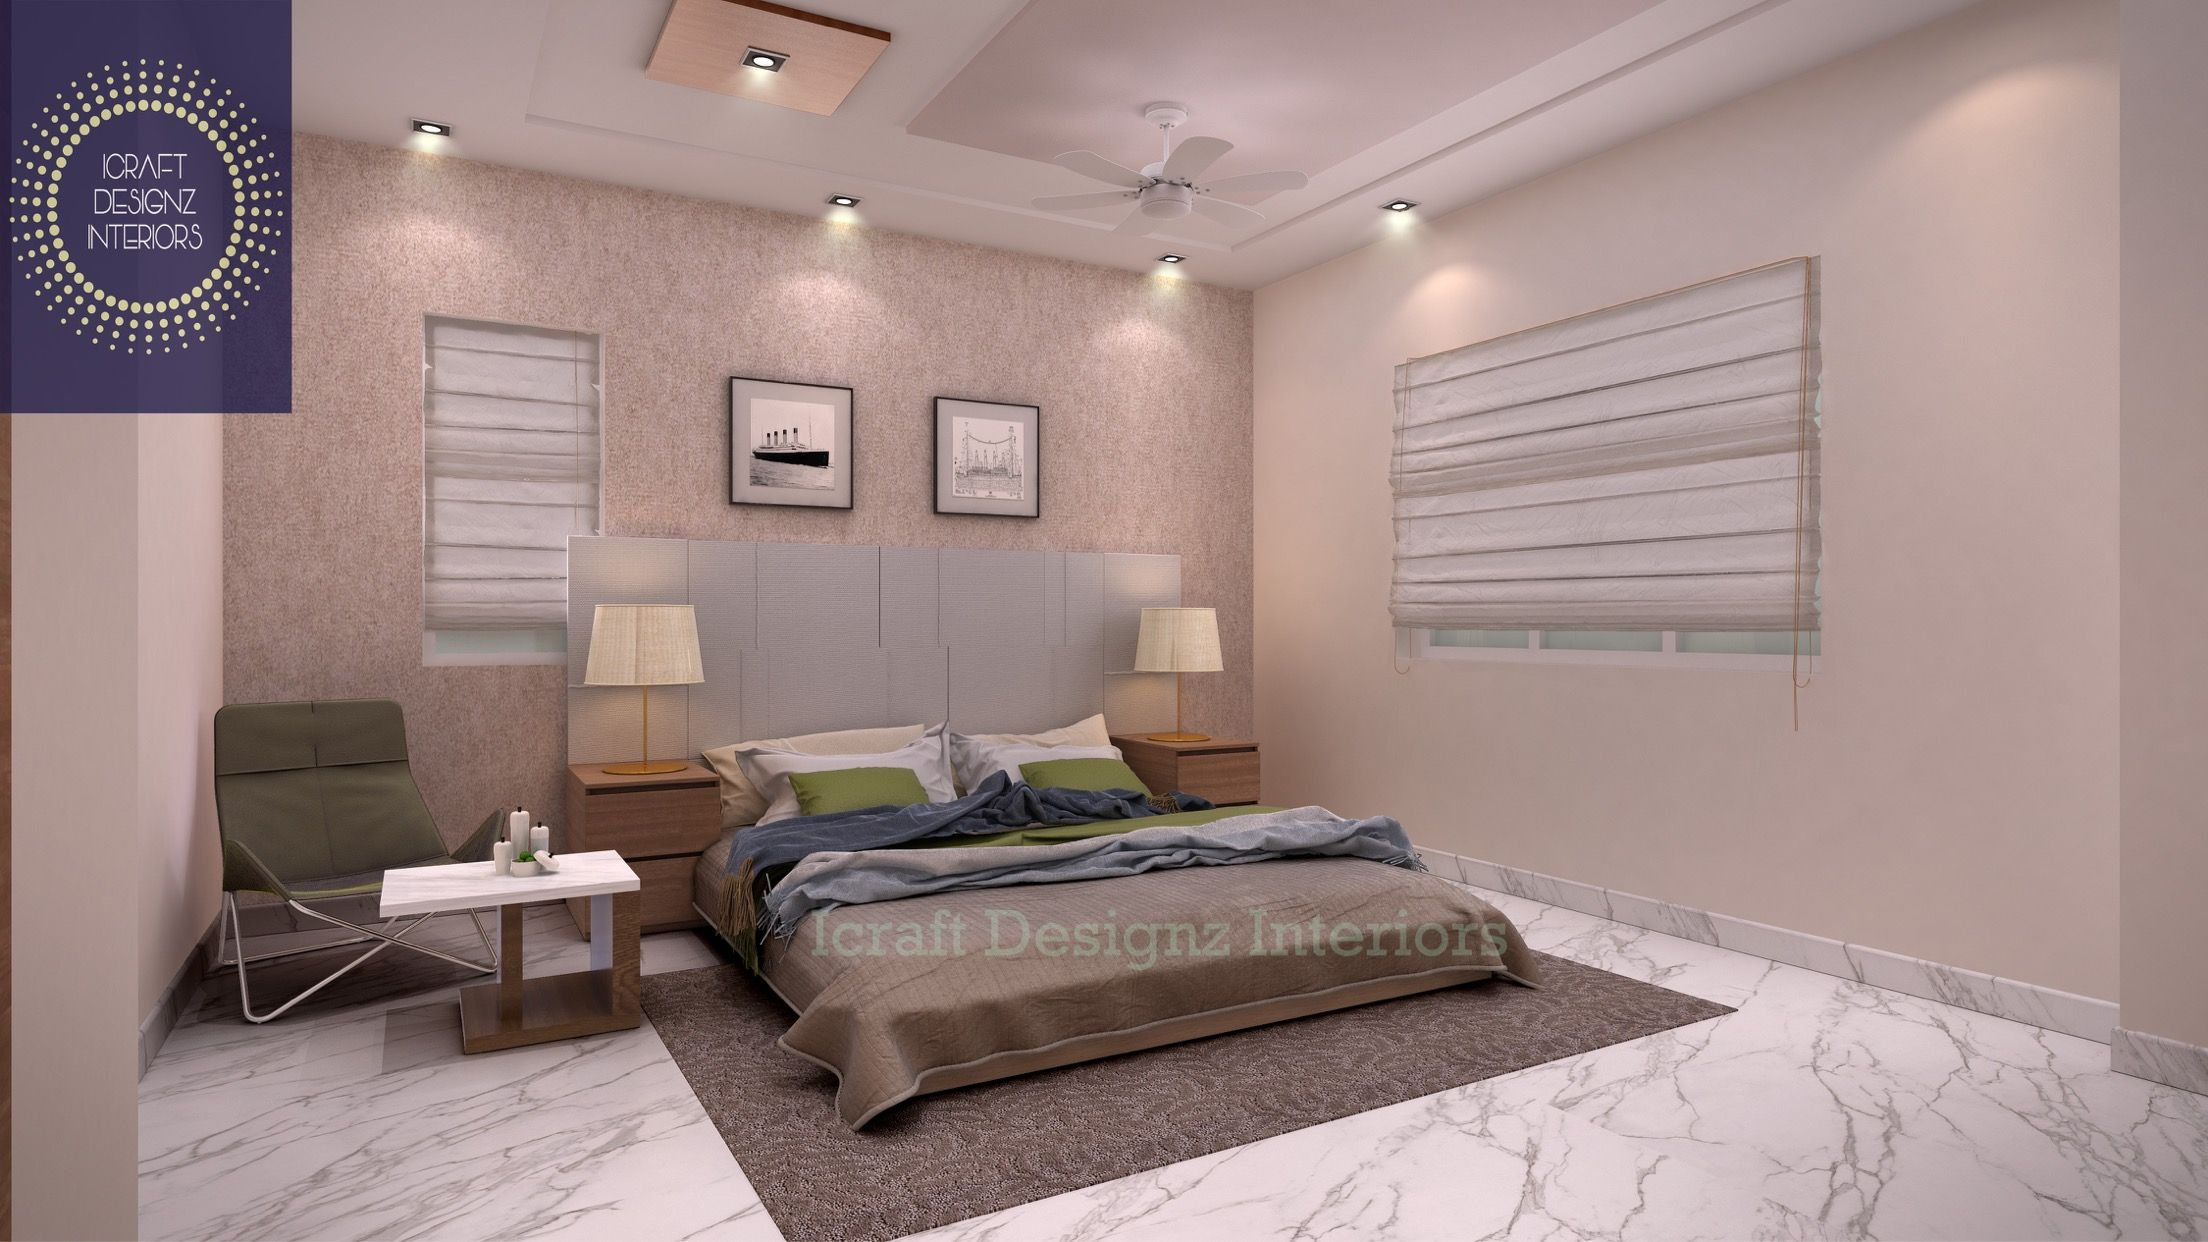 Pin by Icraft designz and interiors on 3D designers in ...